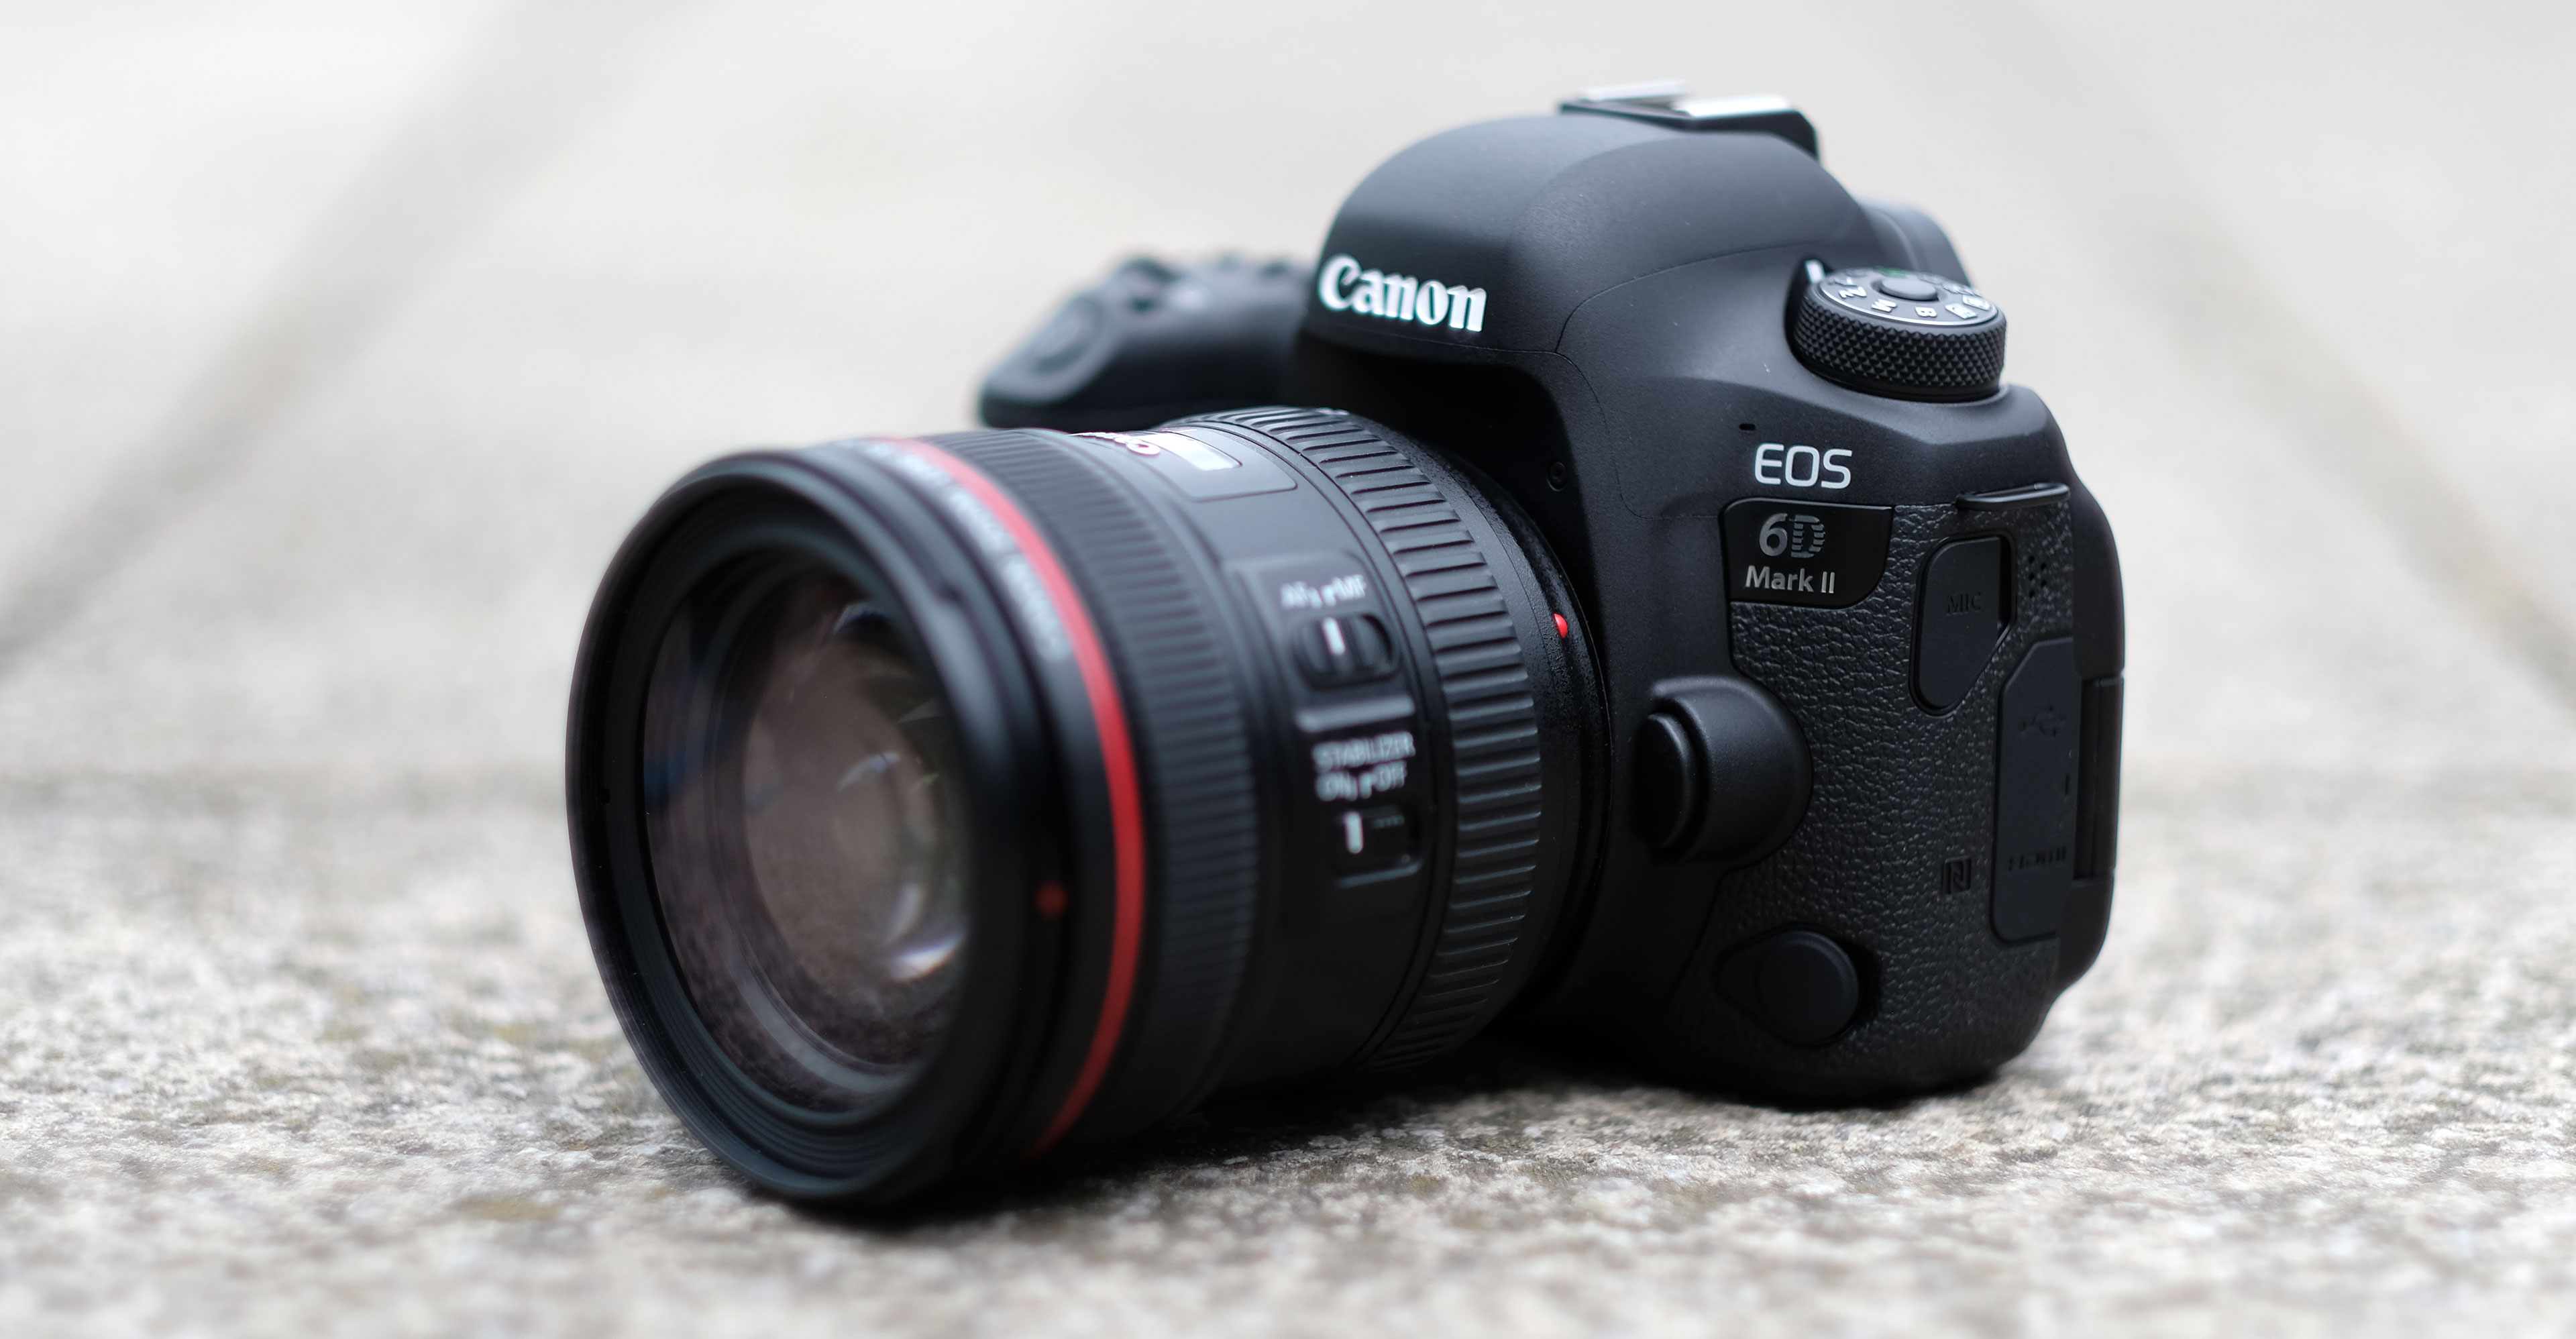 canon eos 6d mark ii review cameralabs. Black Bedroom Furniture Sets. Home Design Ideas